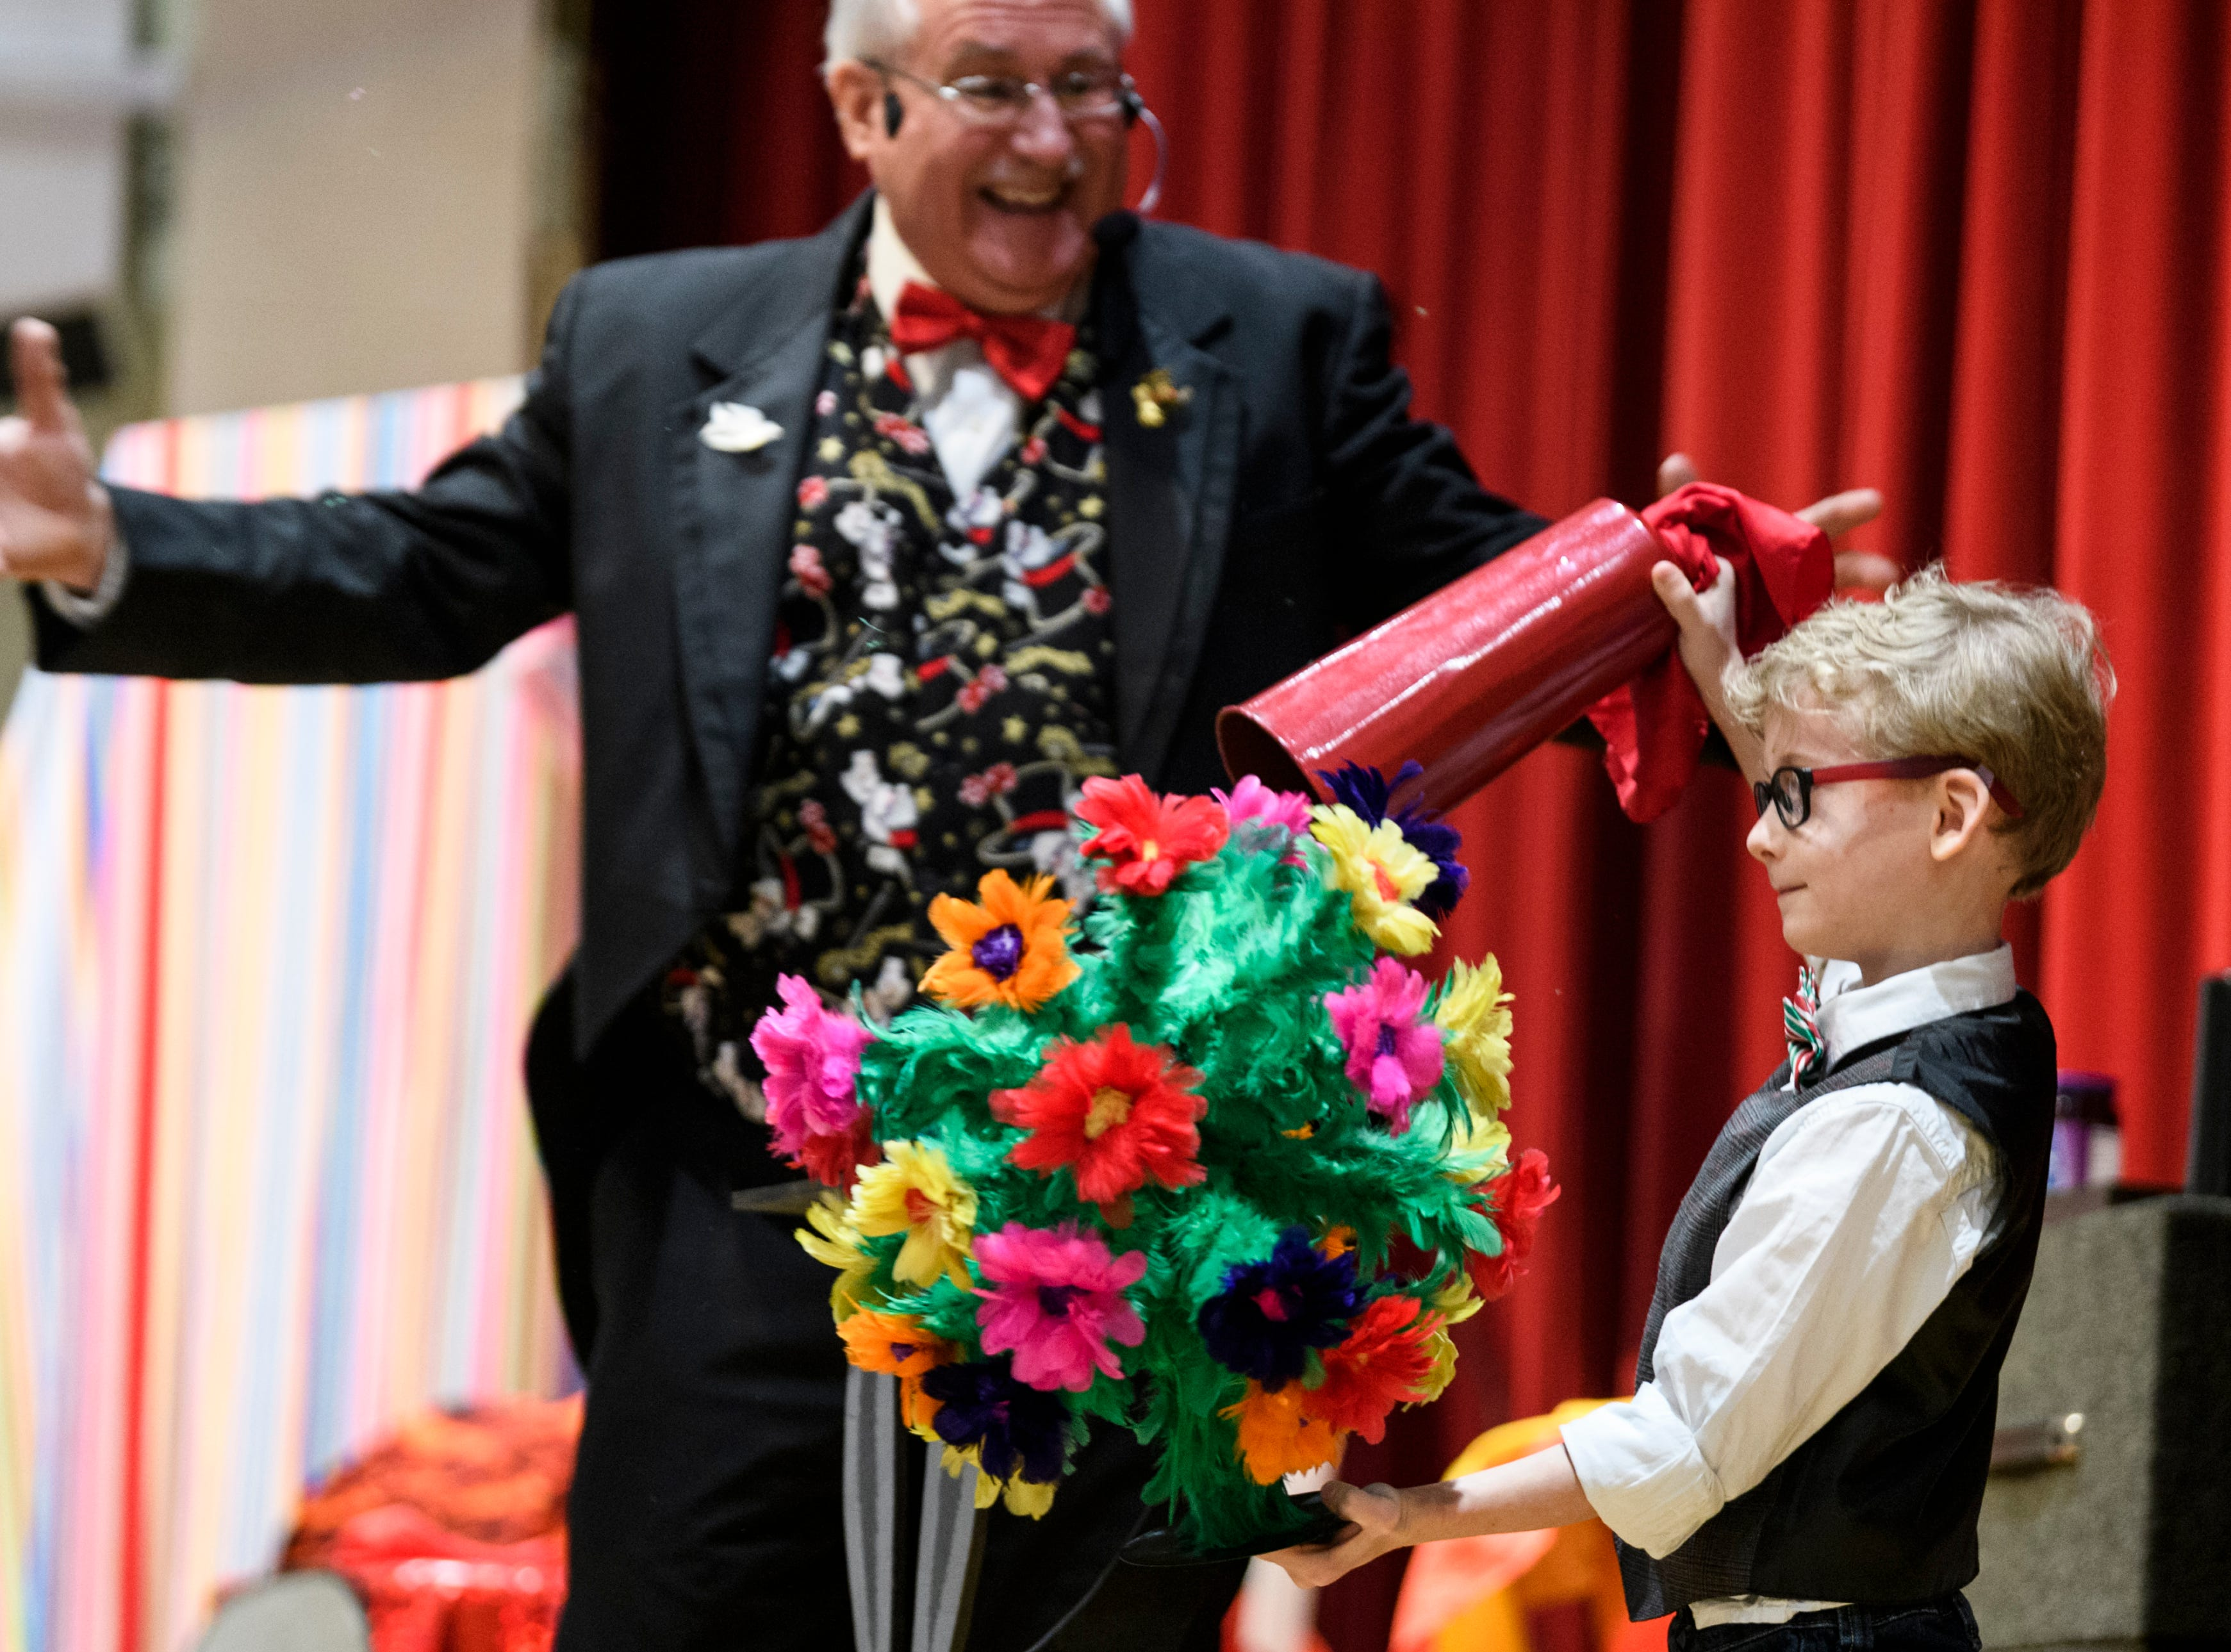 Oliver Sokeland, 7, pulls flowers out of an empty tin as he performs magic tricks with Joe DiVietro, back, known on stage as Joey D, during the Goodfellows Christmas party at South Middle School in Henderson, Ky., Sunday, Dec. 16, 2018.